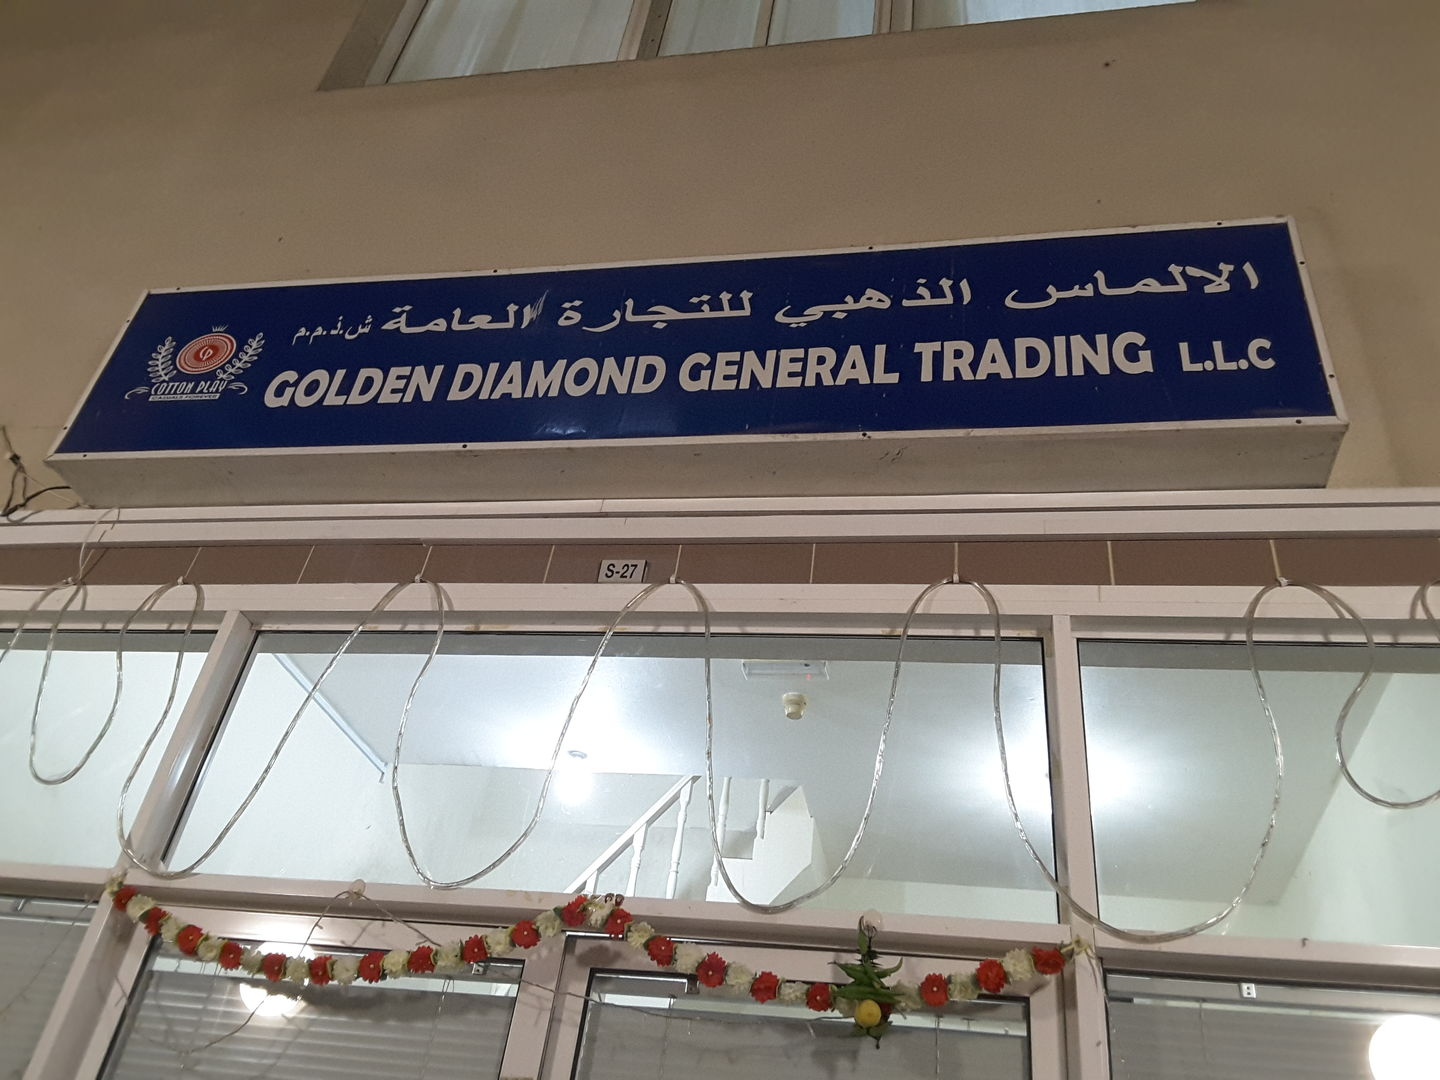 HiDubai-business-golden-diamond-general-trading-b2b-services-distributors-wholesalers-al-fahidi-al-souq-al-kabeer-dubai-2